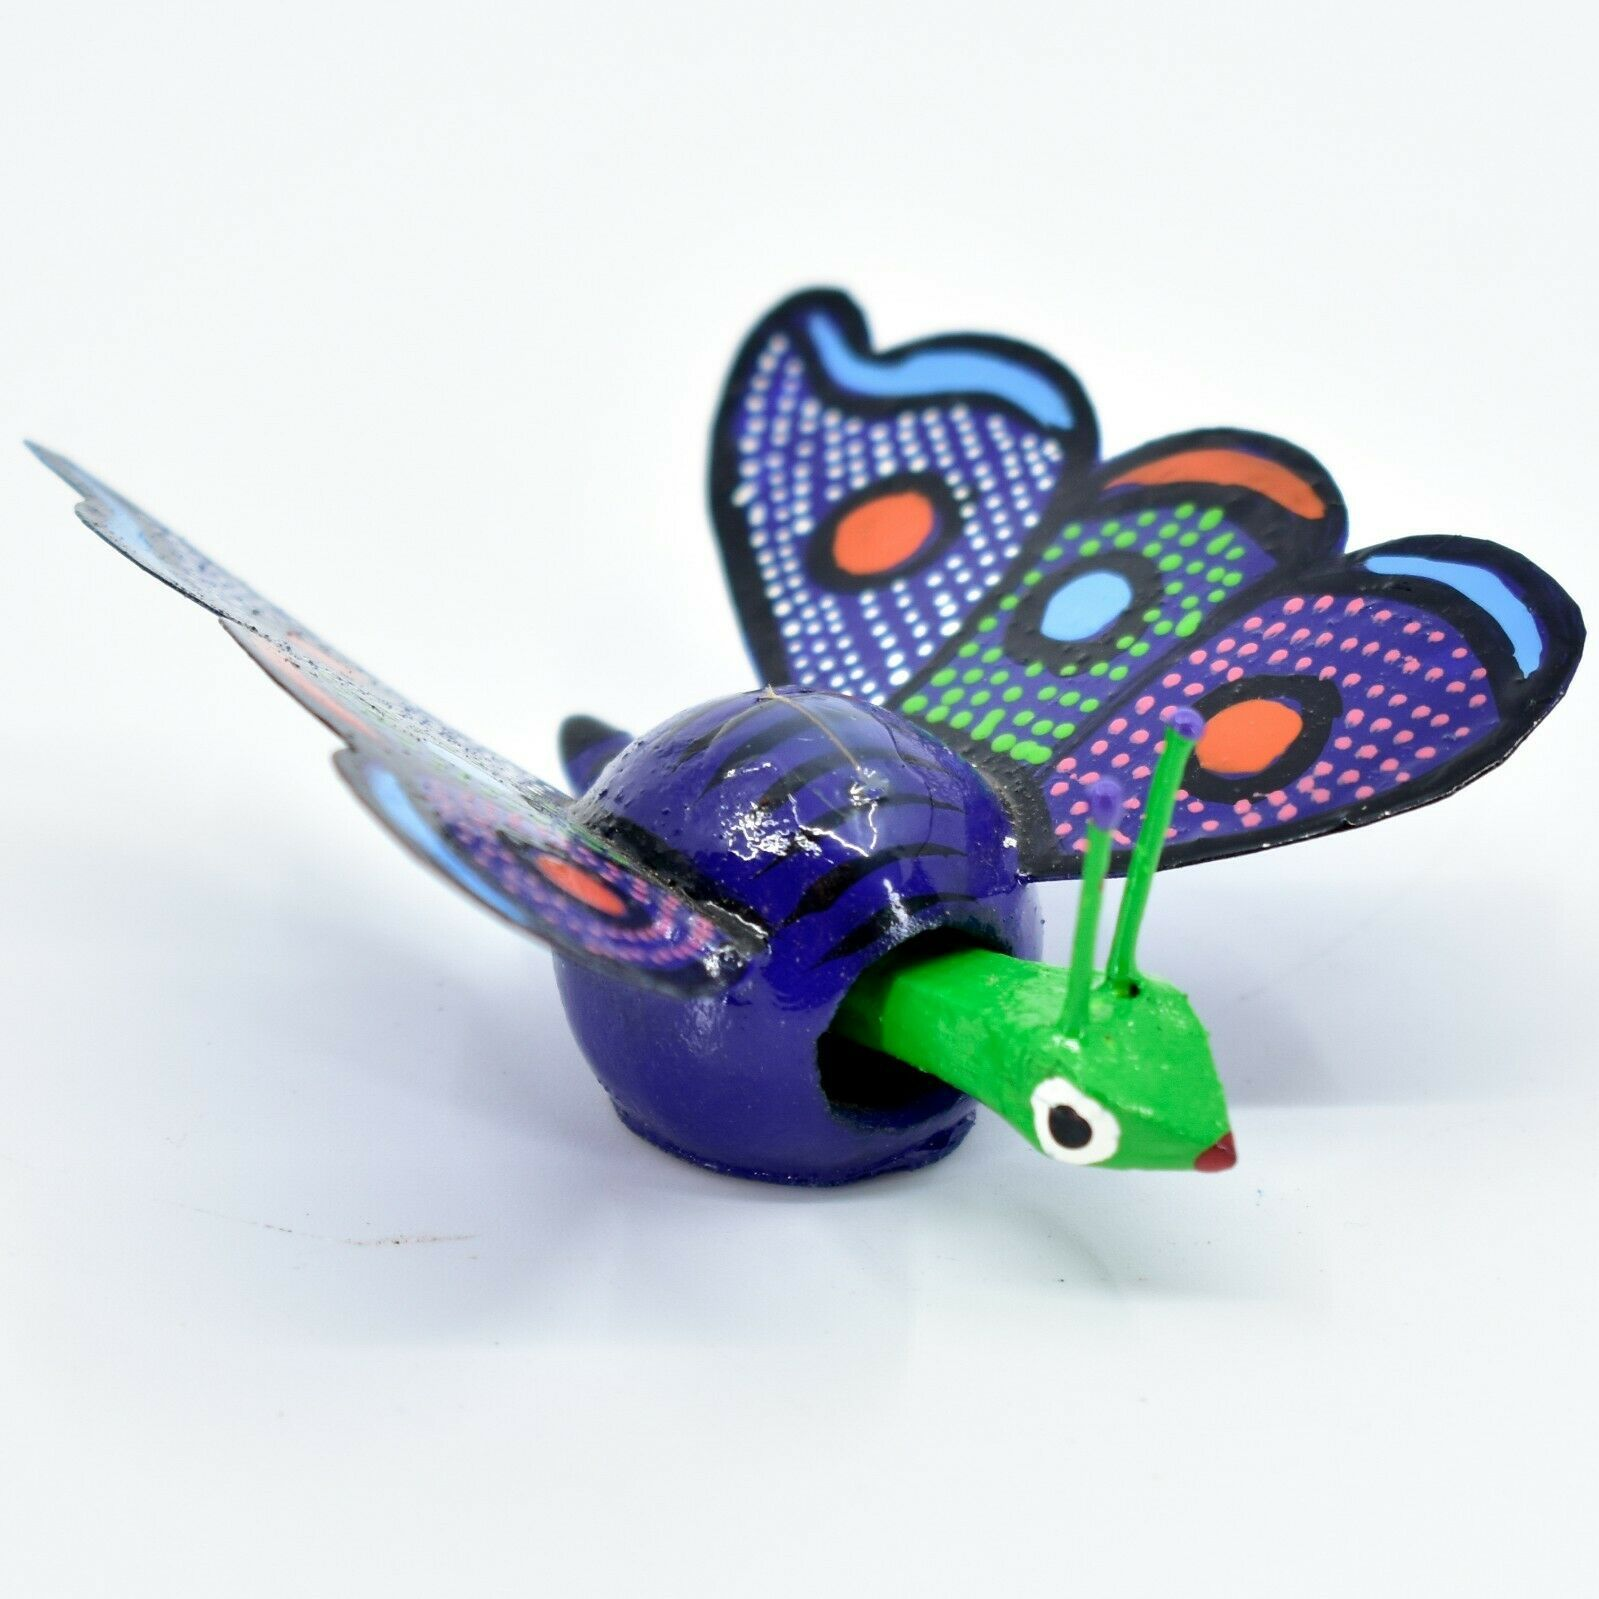 Handmade Alebrijes Oaxacan Wood Carving Folk Art Butterfly Bobble Head Figurine